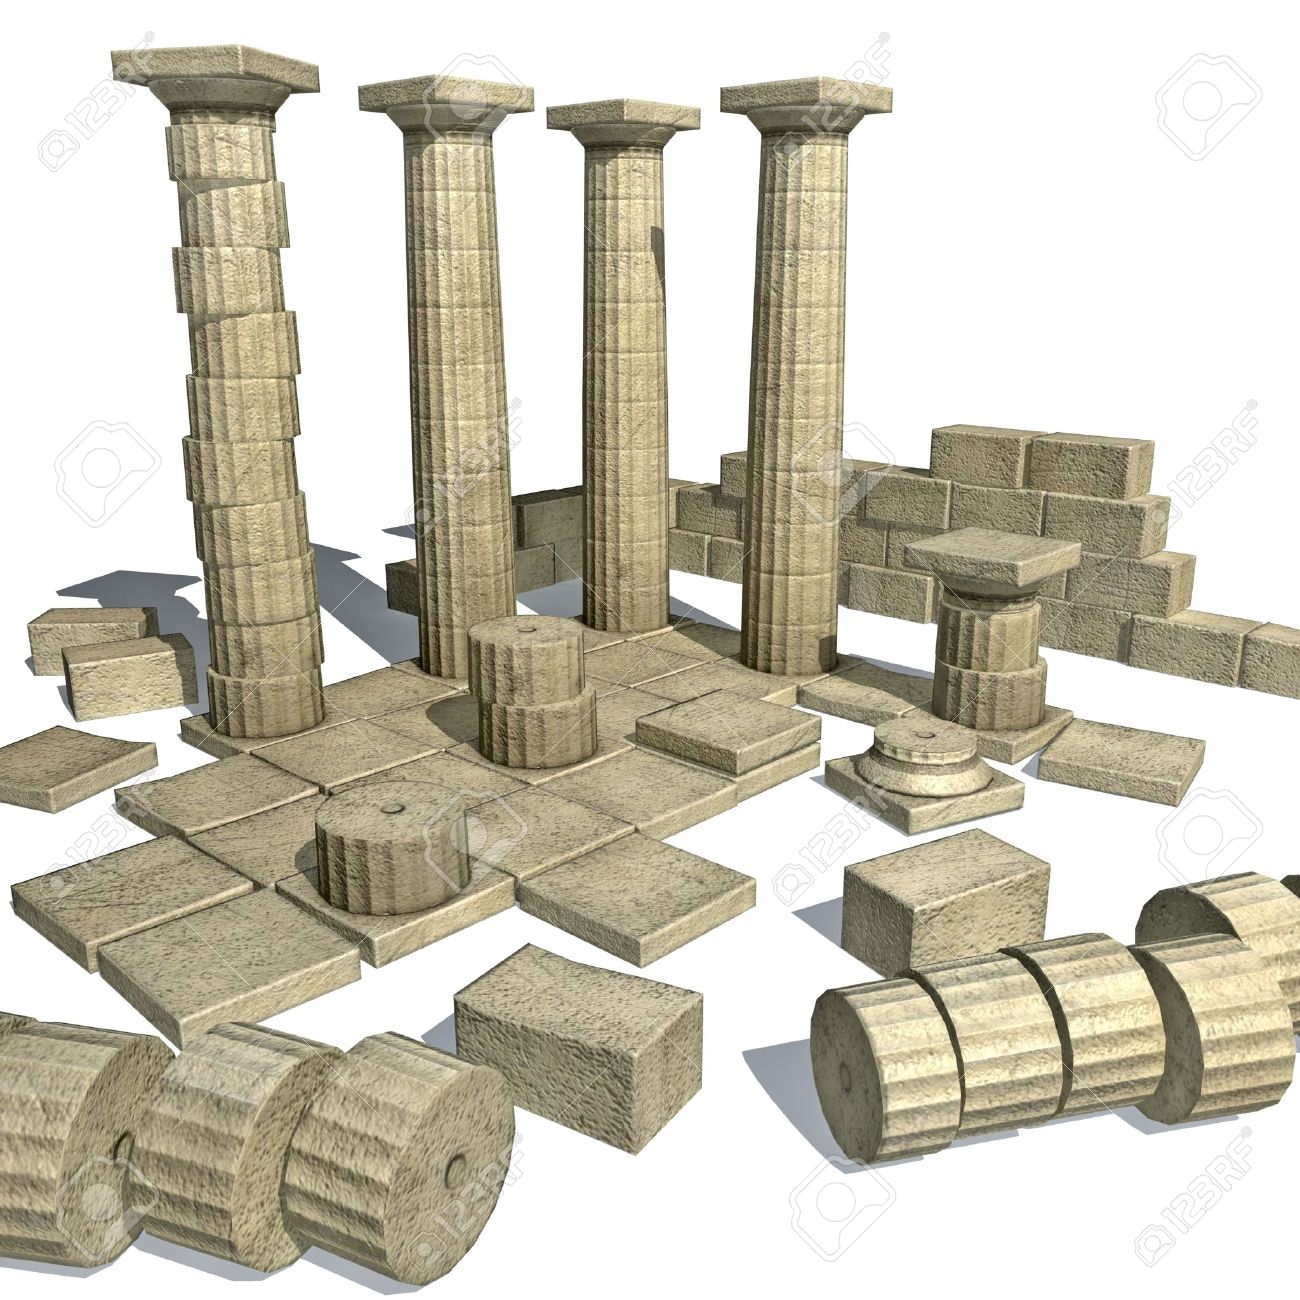 3d Render Of Greek Ruins With Parthenon Like Columns Stock Photo.